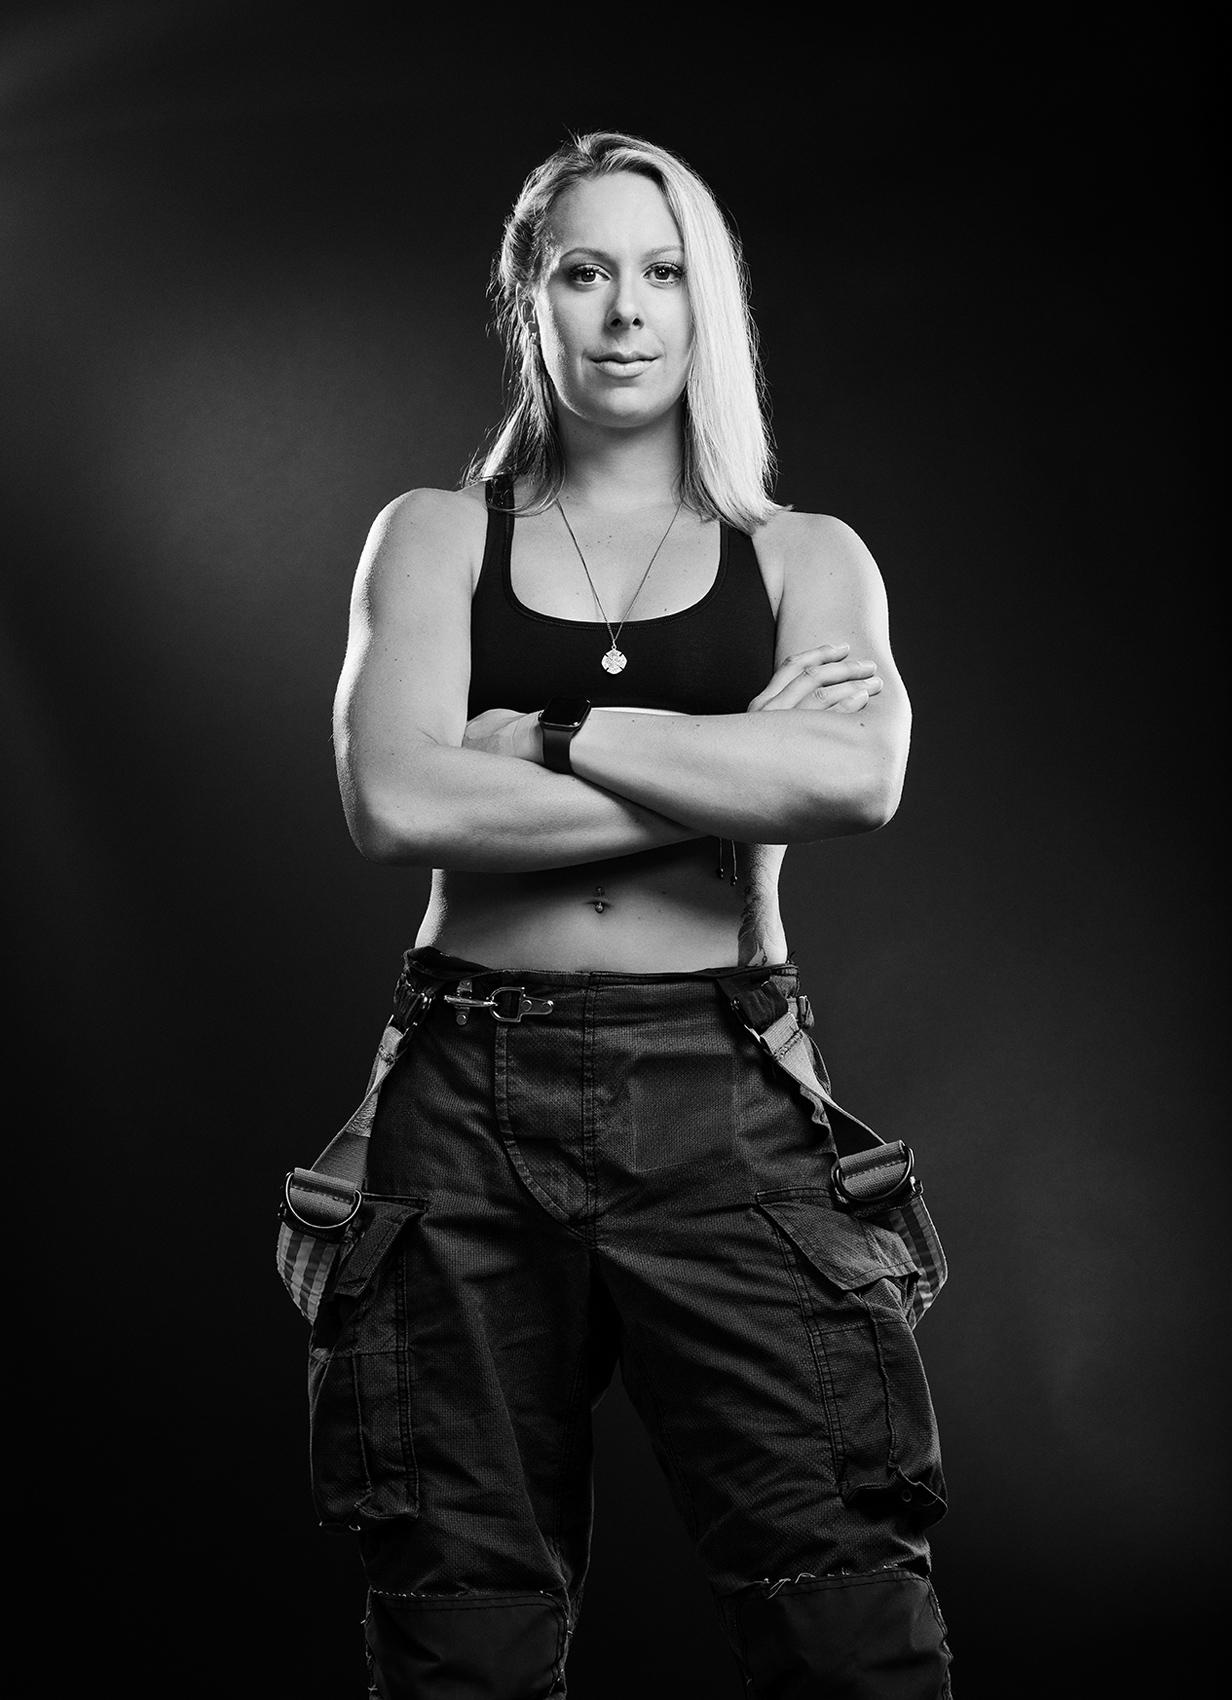 HOF-Hall-of-Flame-Calender-Erich-Saide-Vancouver-Portrait-Photographer-Female-Firefighters-First-Responders-Hot-Hero-July-Kelsey